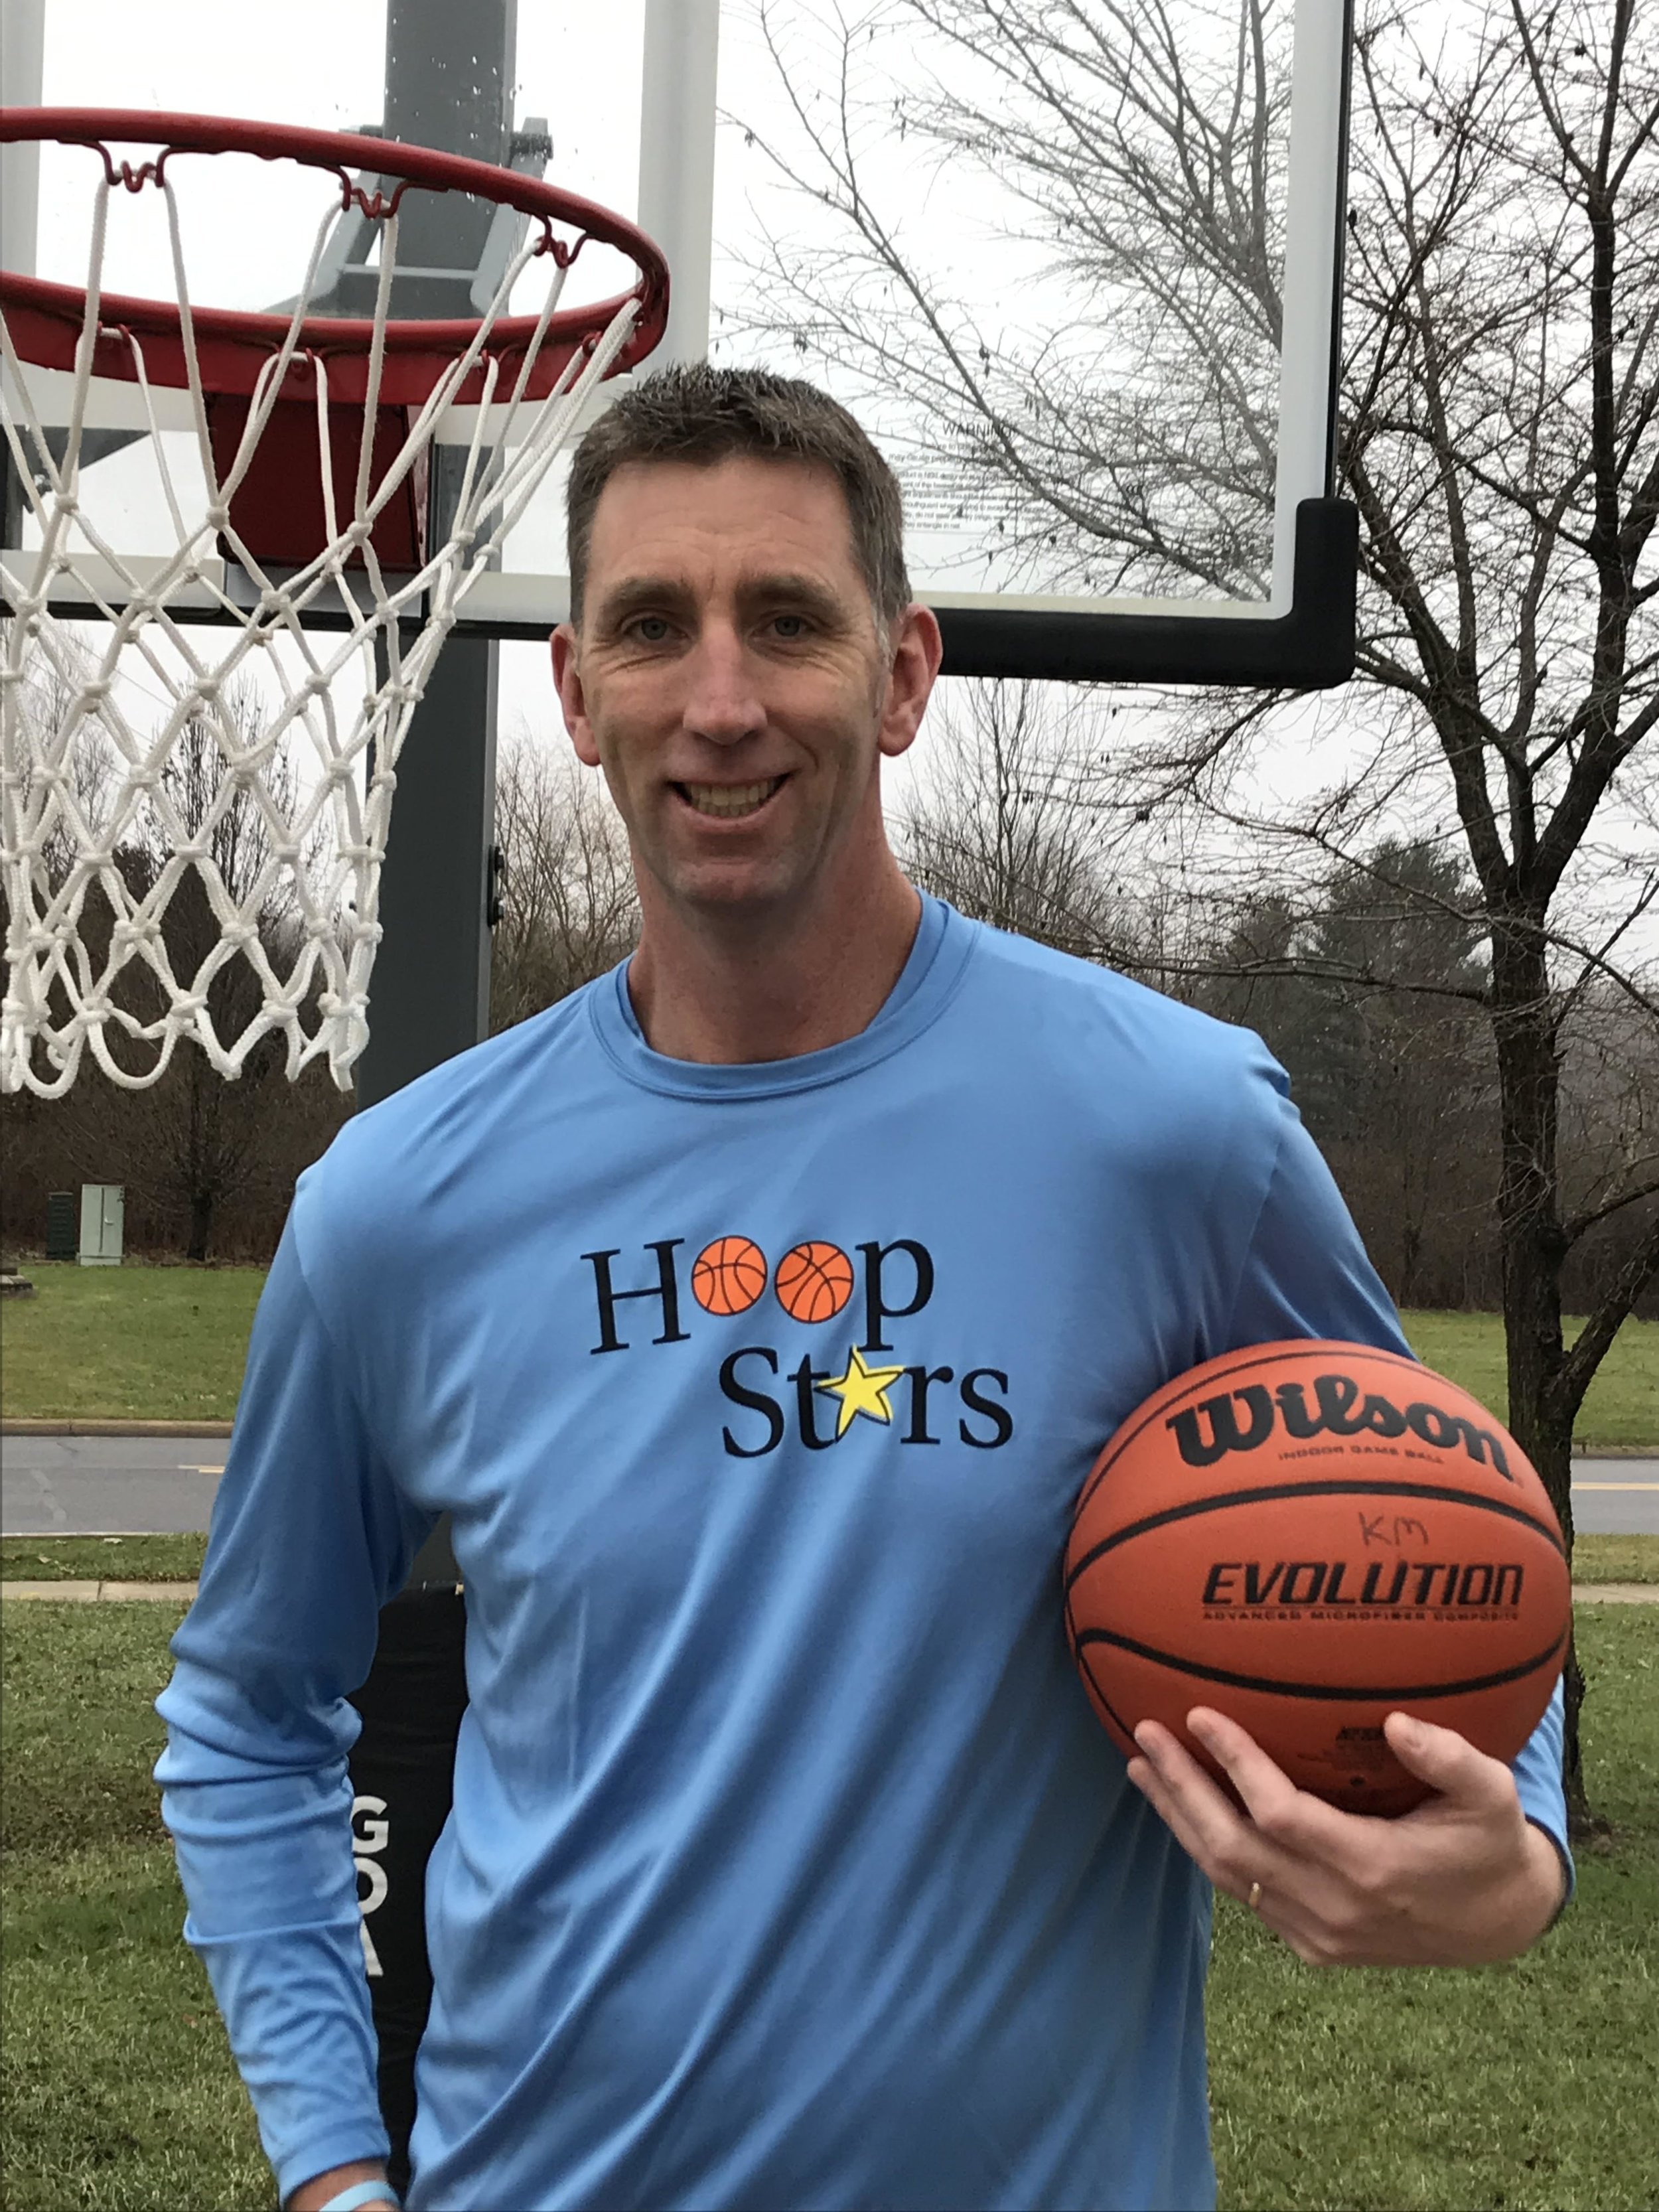 Dan McKenna - Hoop Stars classes are taught by Owner and Director Dan McKenna. Dan was a member of the Penn State Basketball team from 1990-1994, and has been coaching and teaching basketball for the past 25 years. Dan truly enjoys teaching basketball to young players while focusing on coaching, and learning the game in a positive environment.Hoop Stars is a new basketball program designed to teach children the fundamentals of the game. Hoop Stars Classes typically meet once per week for a session length of 6-8 weeks. Hoop Stars' curriculum is age- appropriate and introduces players to a new basketball skill each week while also focusing on team-building concepts.